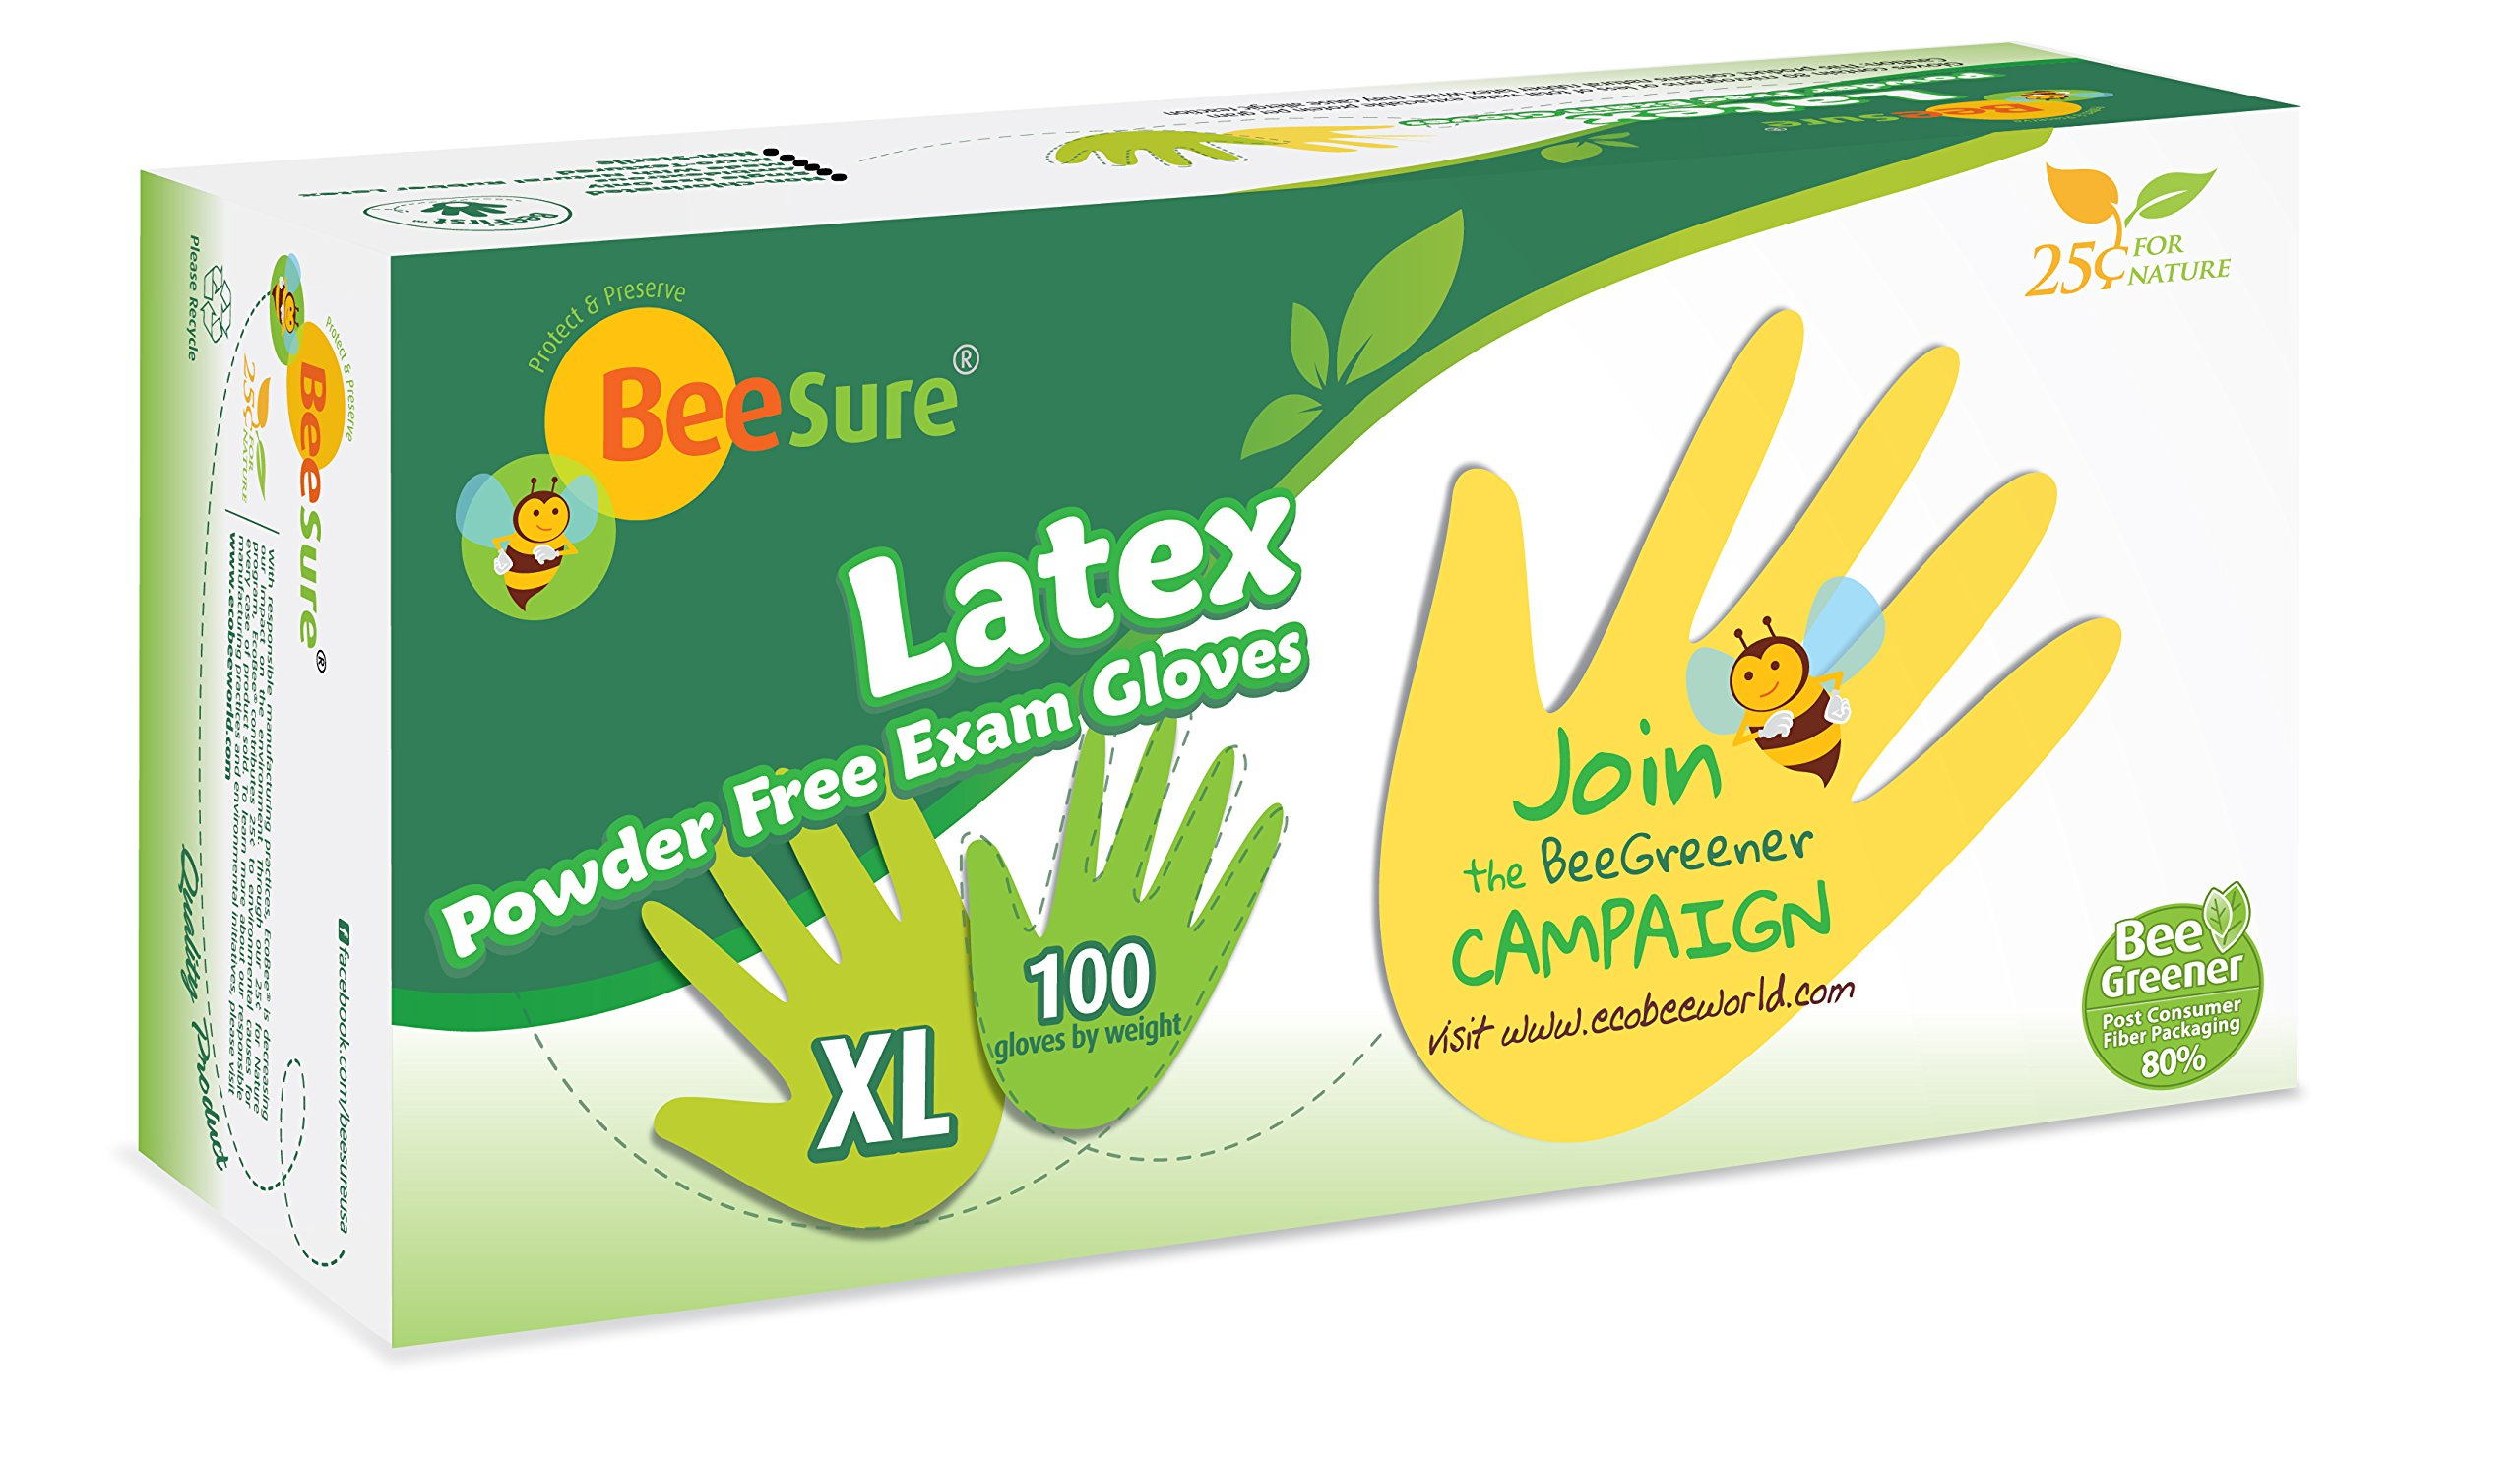 BeeSure BE2819case Powder Free Exam Gloves, Latex, Beaded-Cuff, XL, Yellow (Pack of 1000) by BeeSure